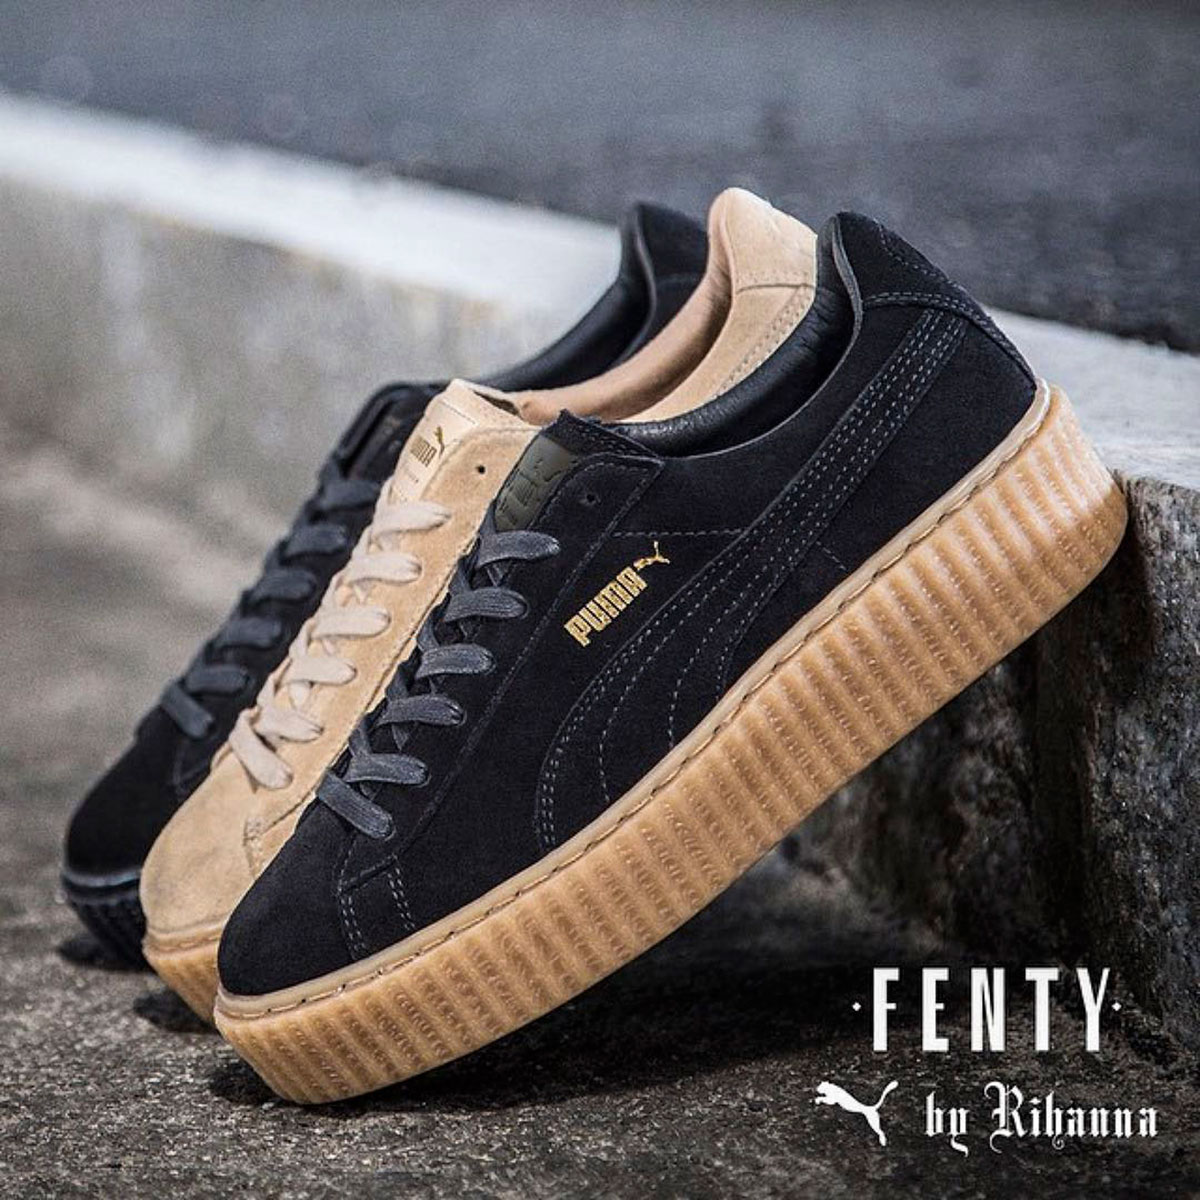 464c5c1fbc Rihanna's Puma Fenty Creepers Sold Out In Hours - StyleFrizz